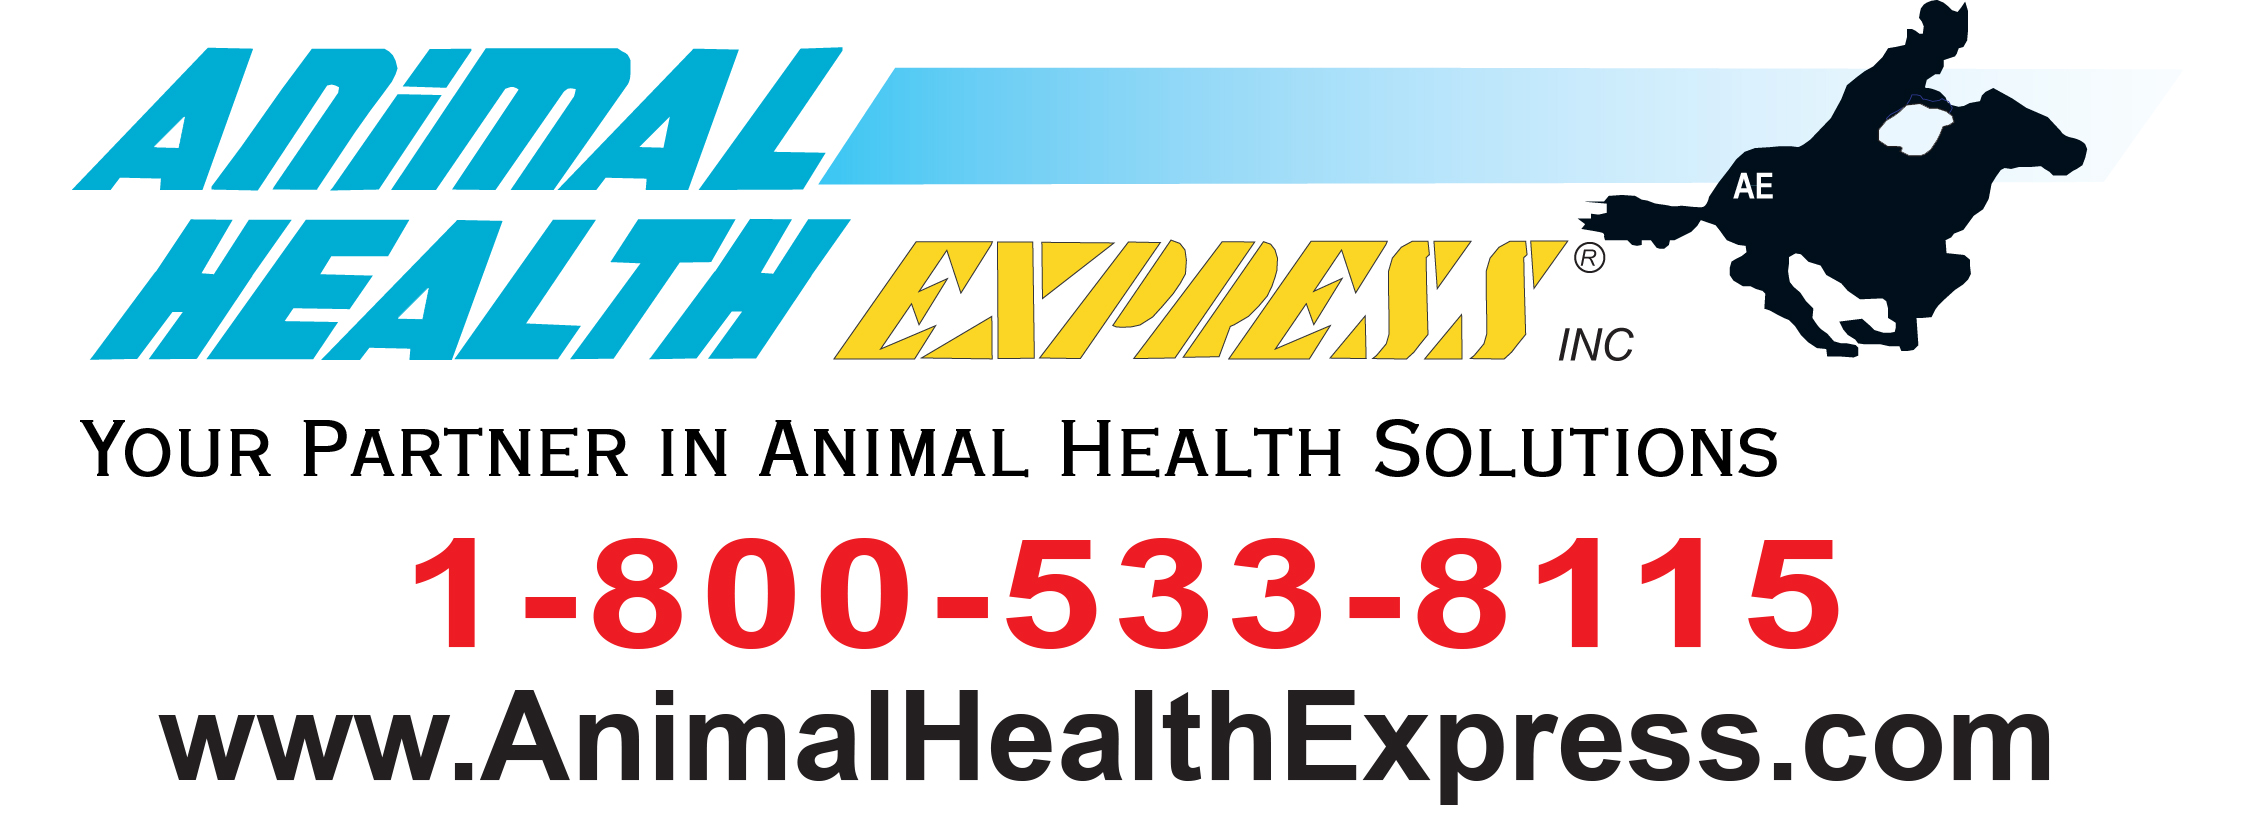 animal health express.jpg